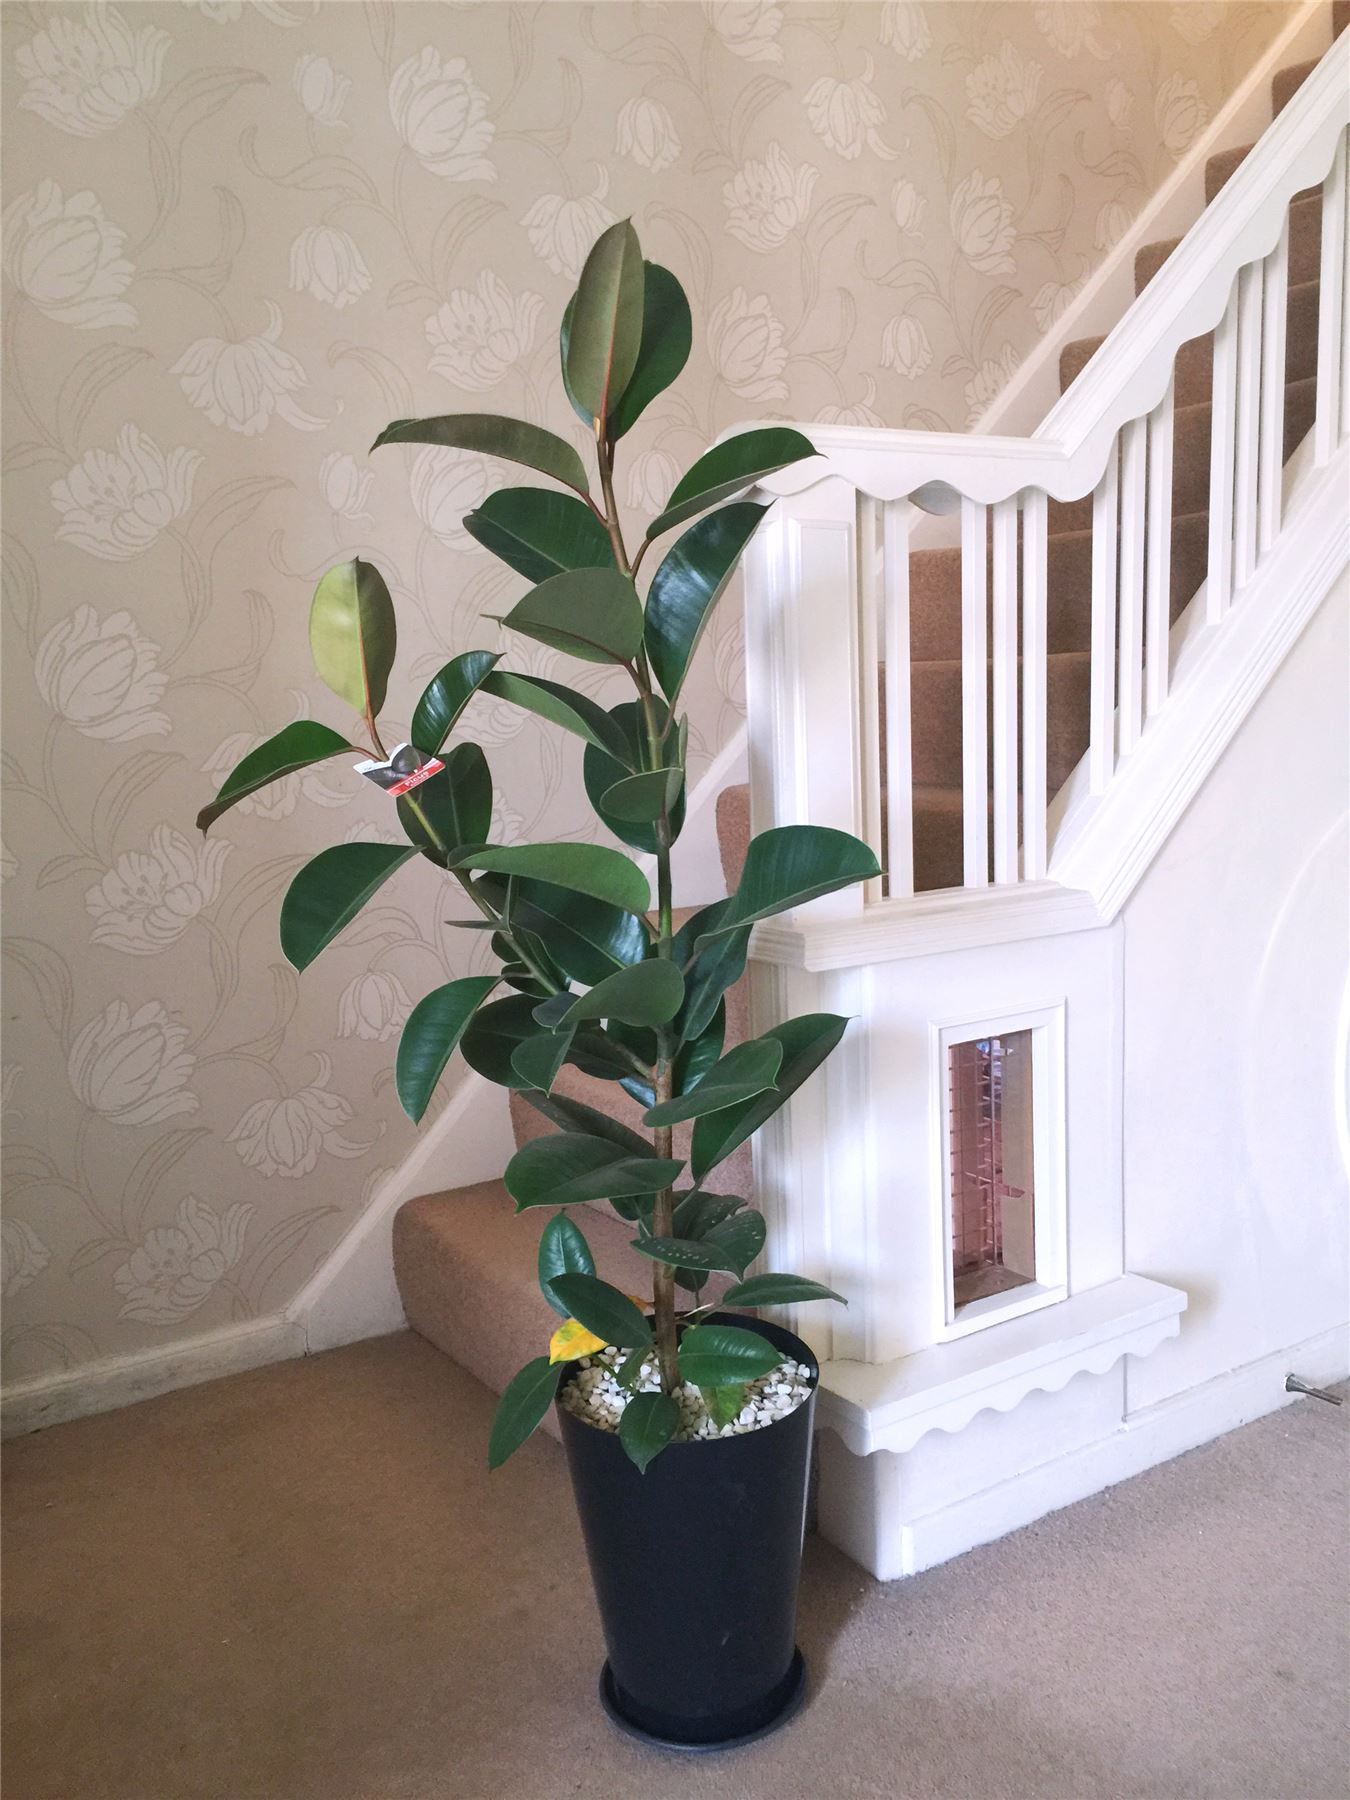 1 Large Evergreen Office House Plant Indoor Tree In Gloss